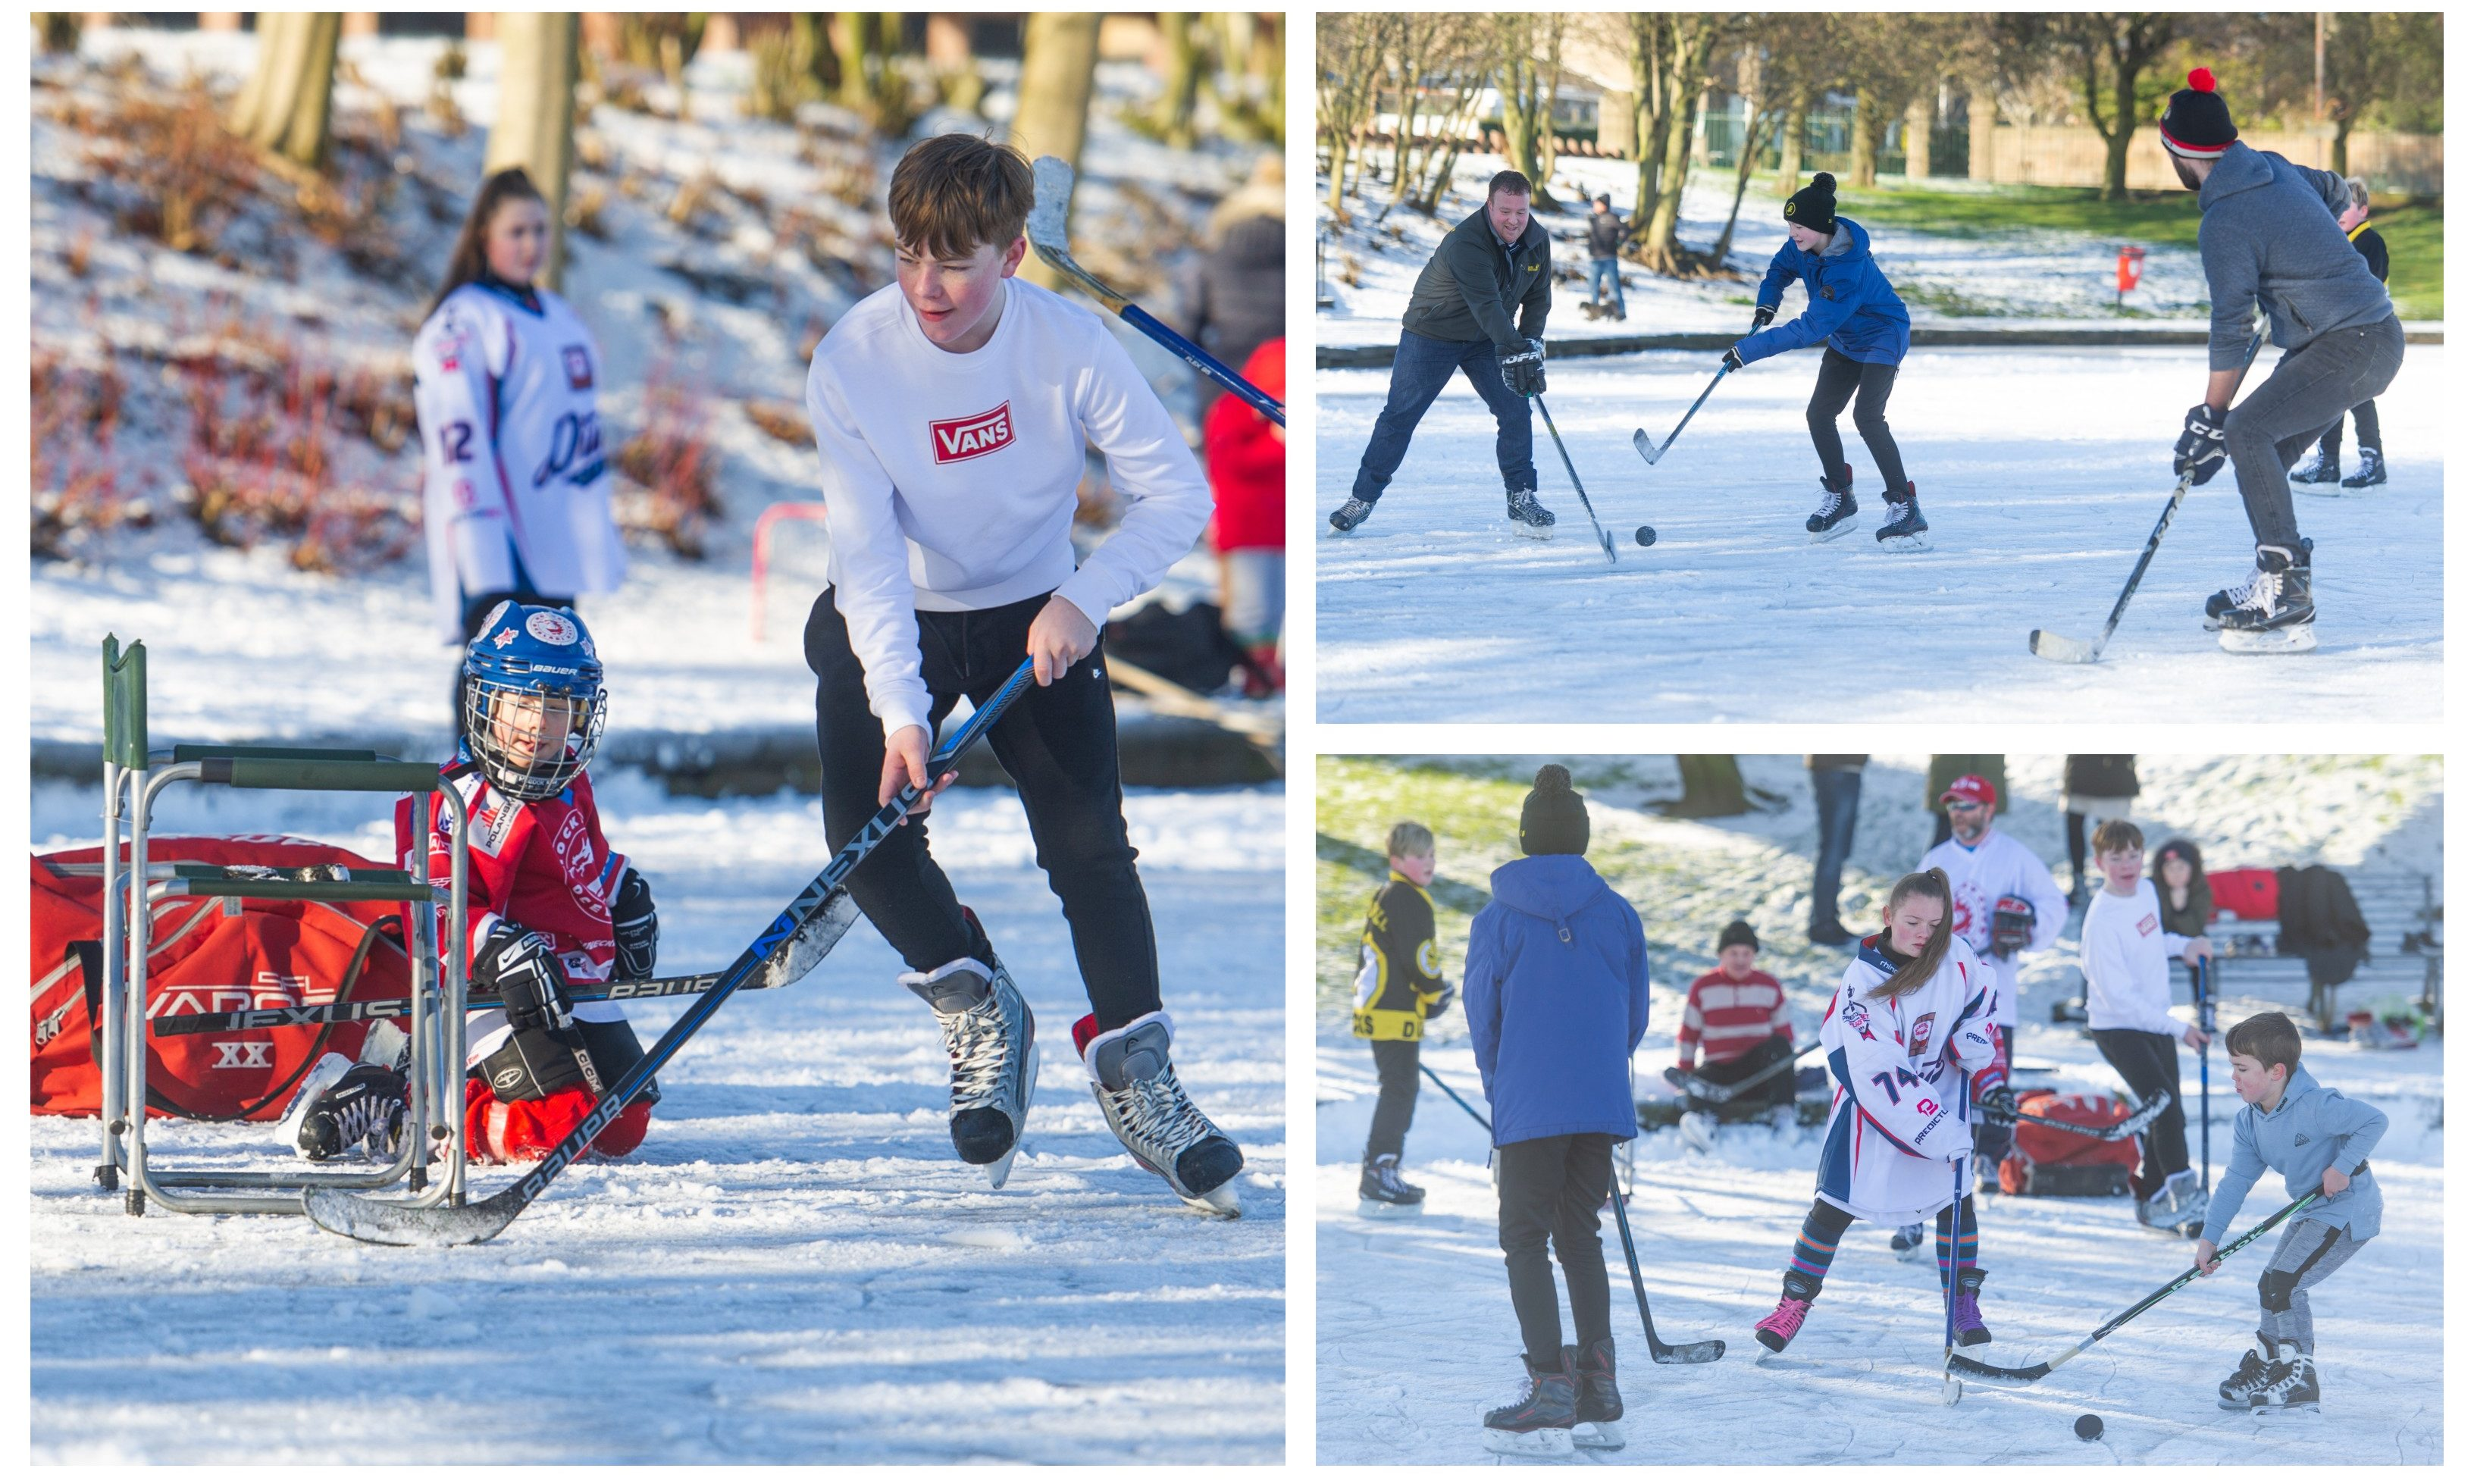 Ice hockey at Swannie Ponds.